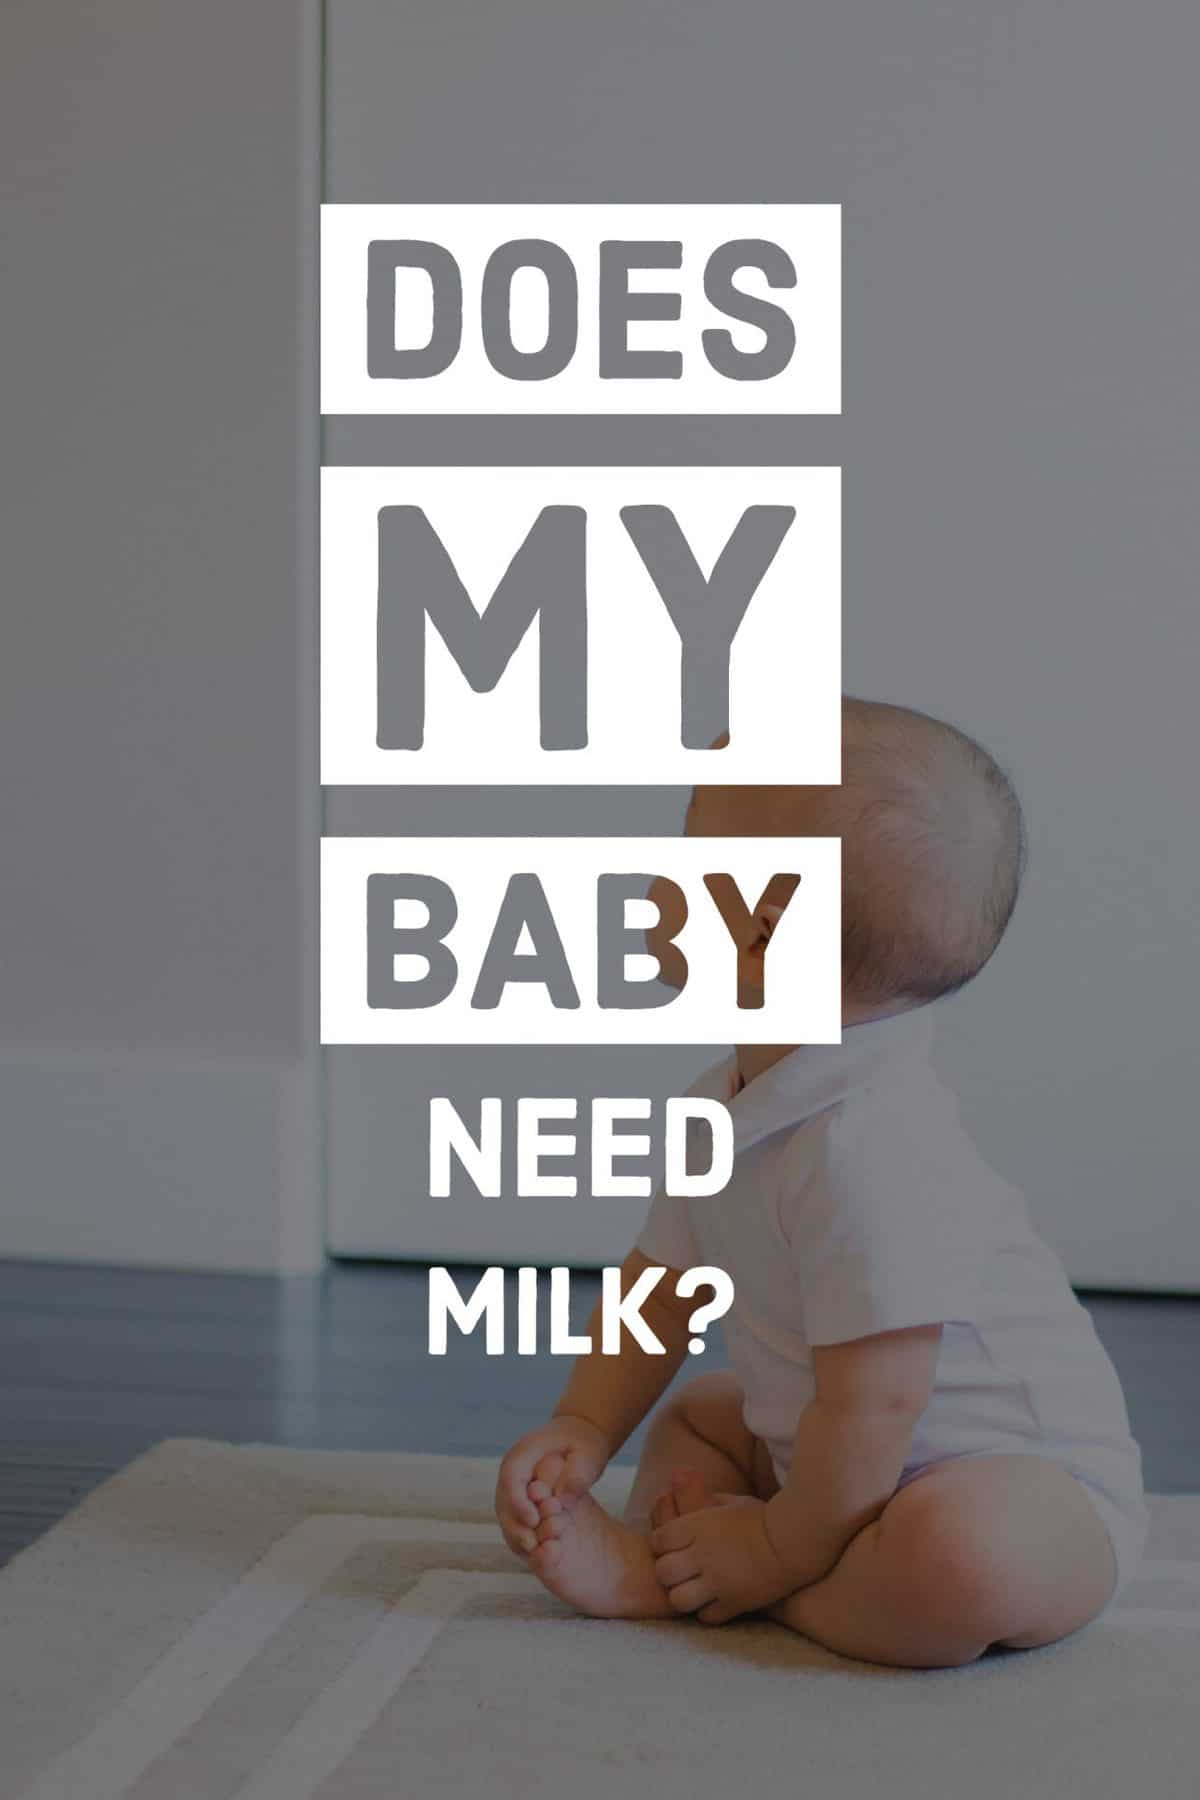 does my baby need milk?